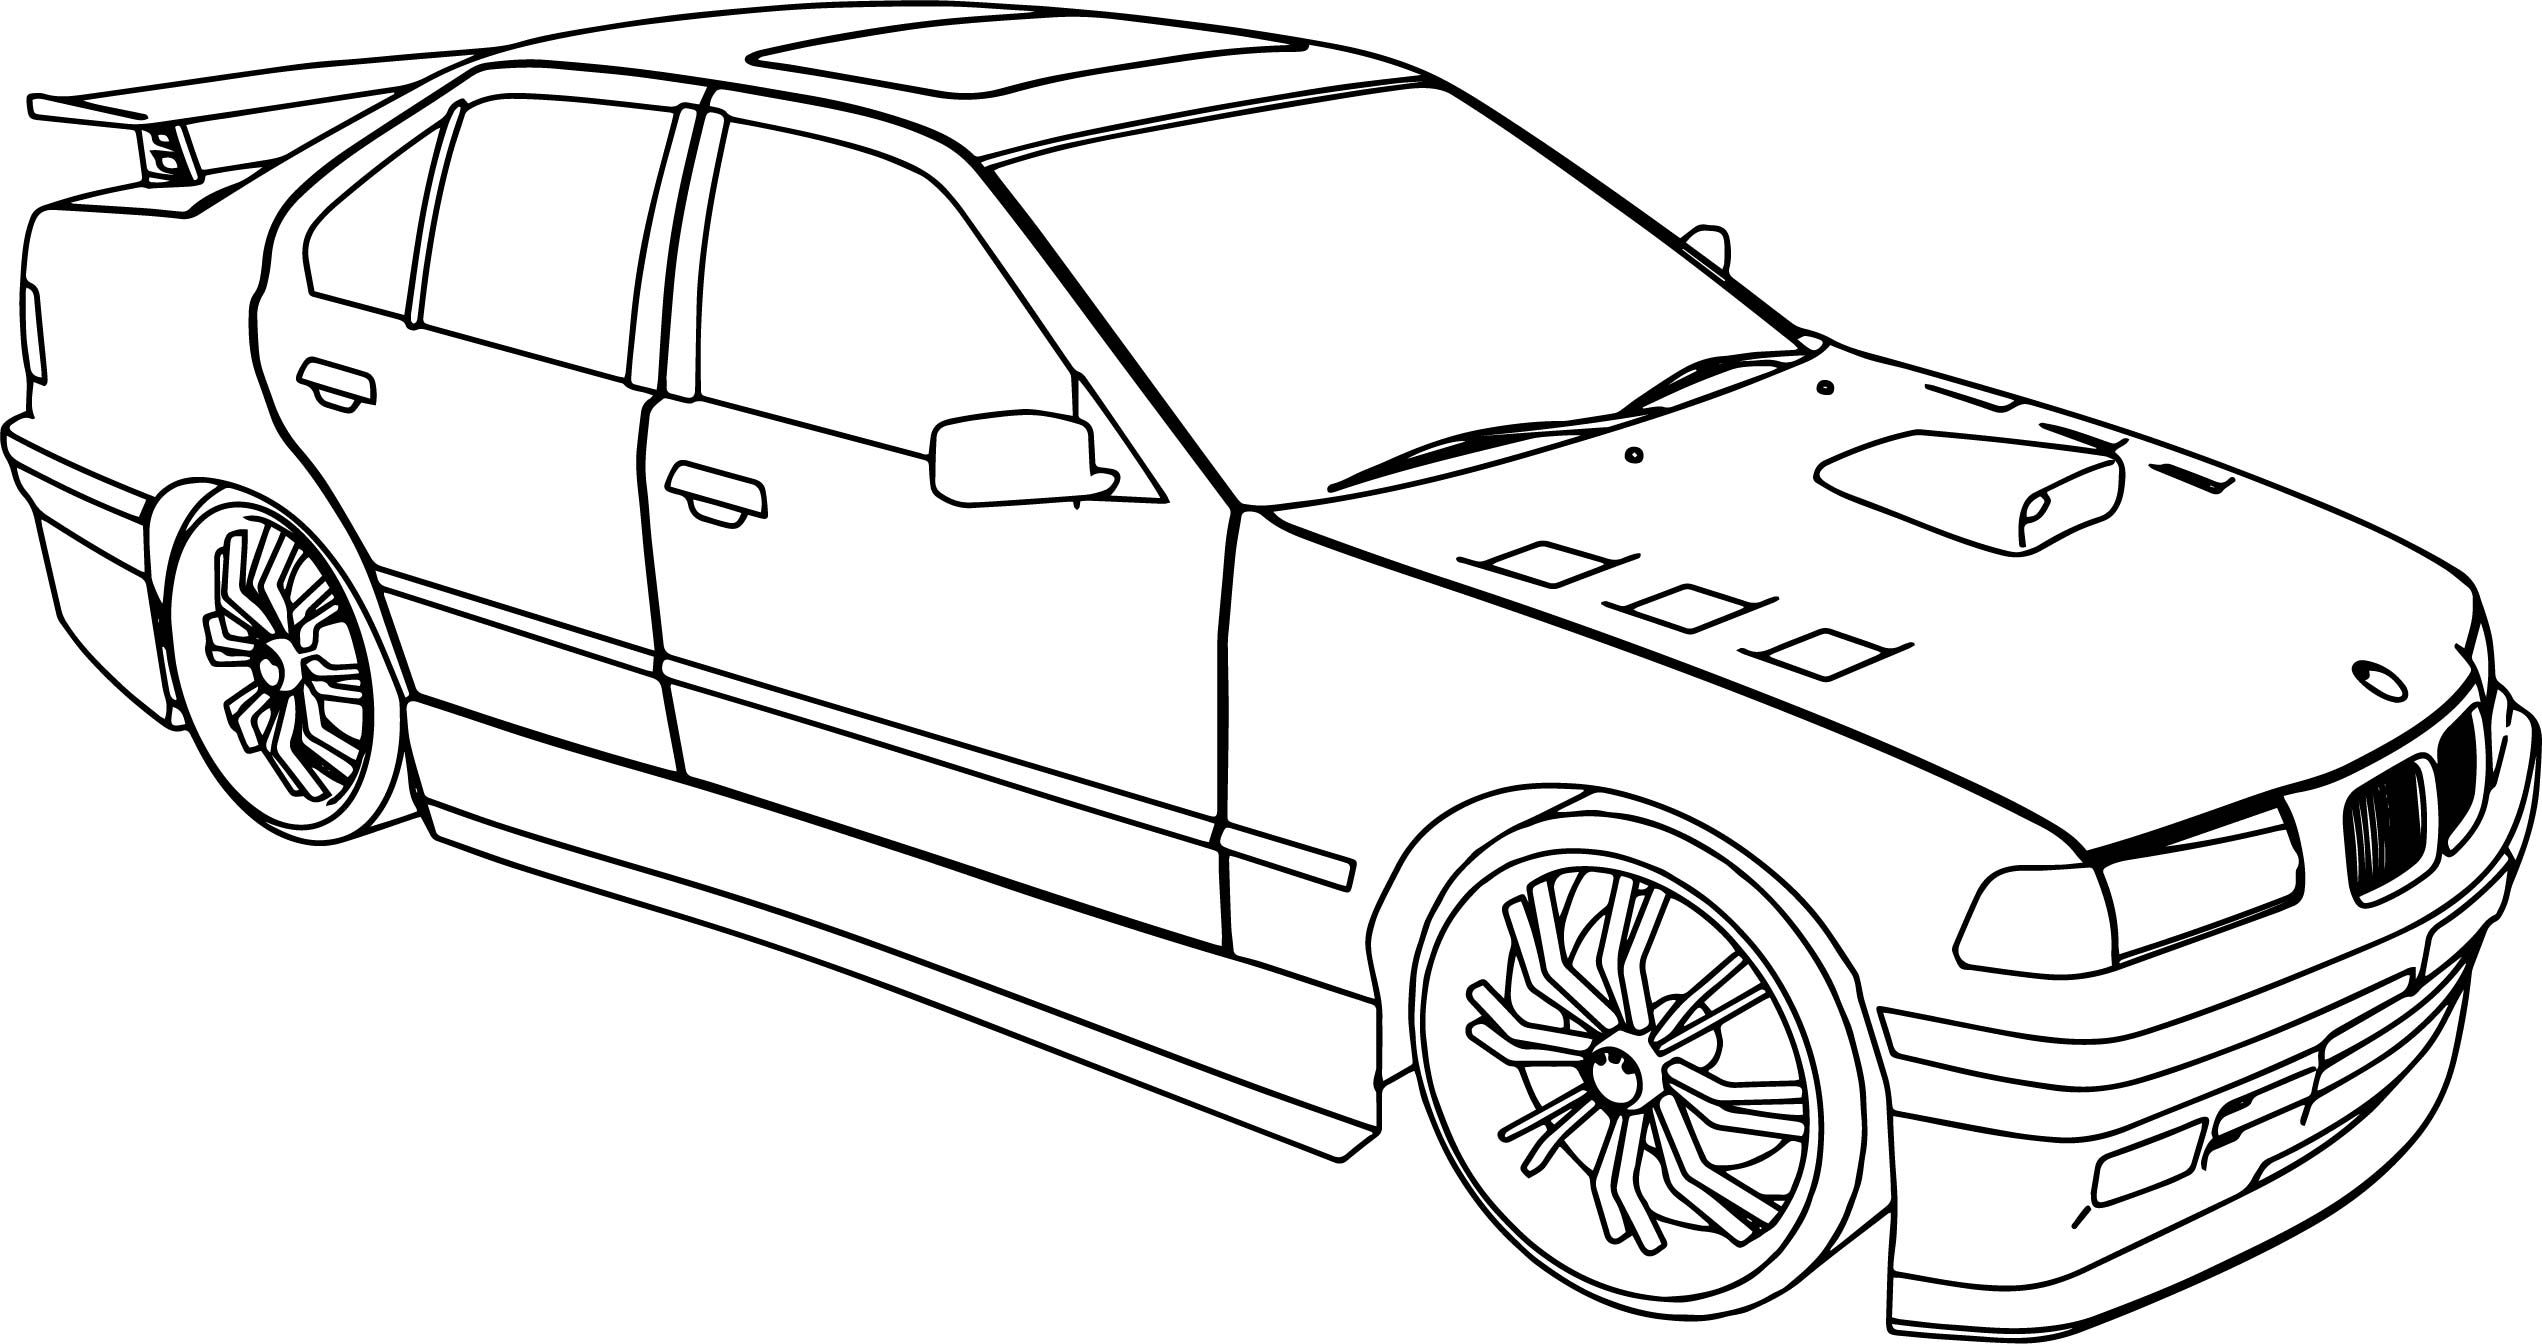 Nice Bmw 325i Tuning Sport Car Coloring Page Sports Coloring Pages Cars Coloring Pages Coloring Pages